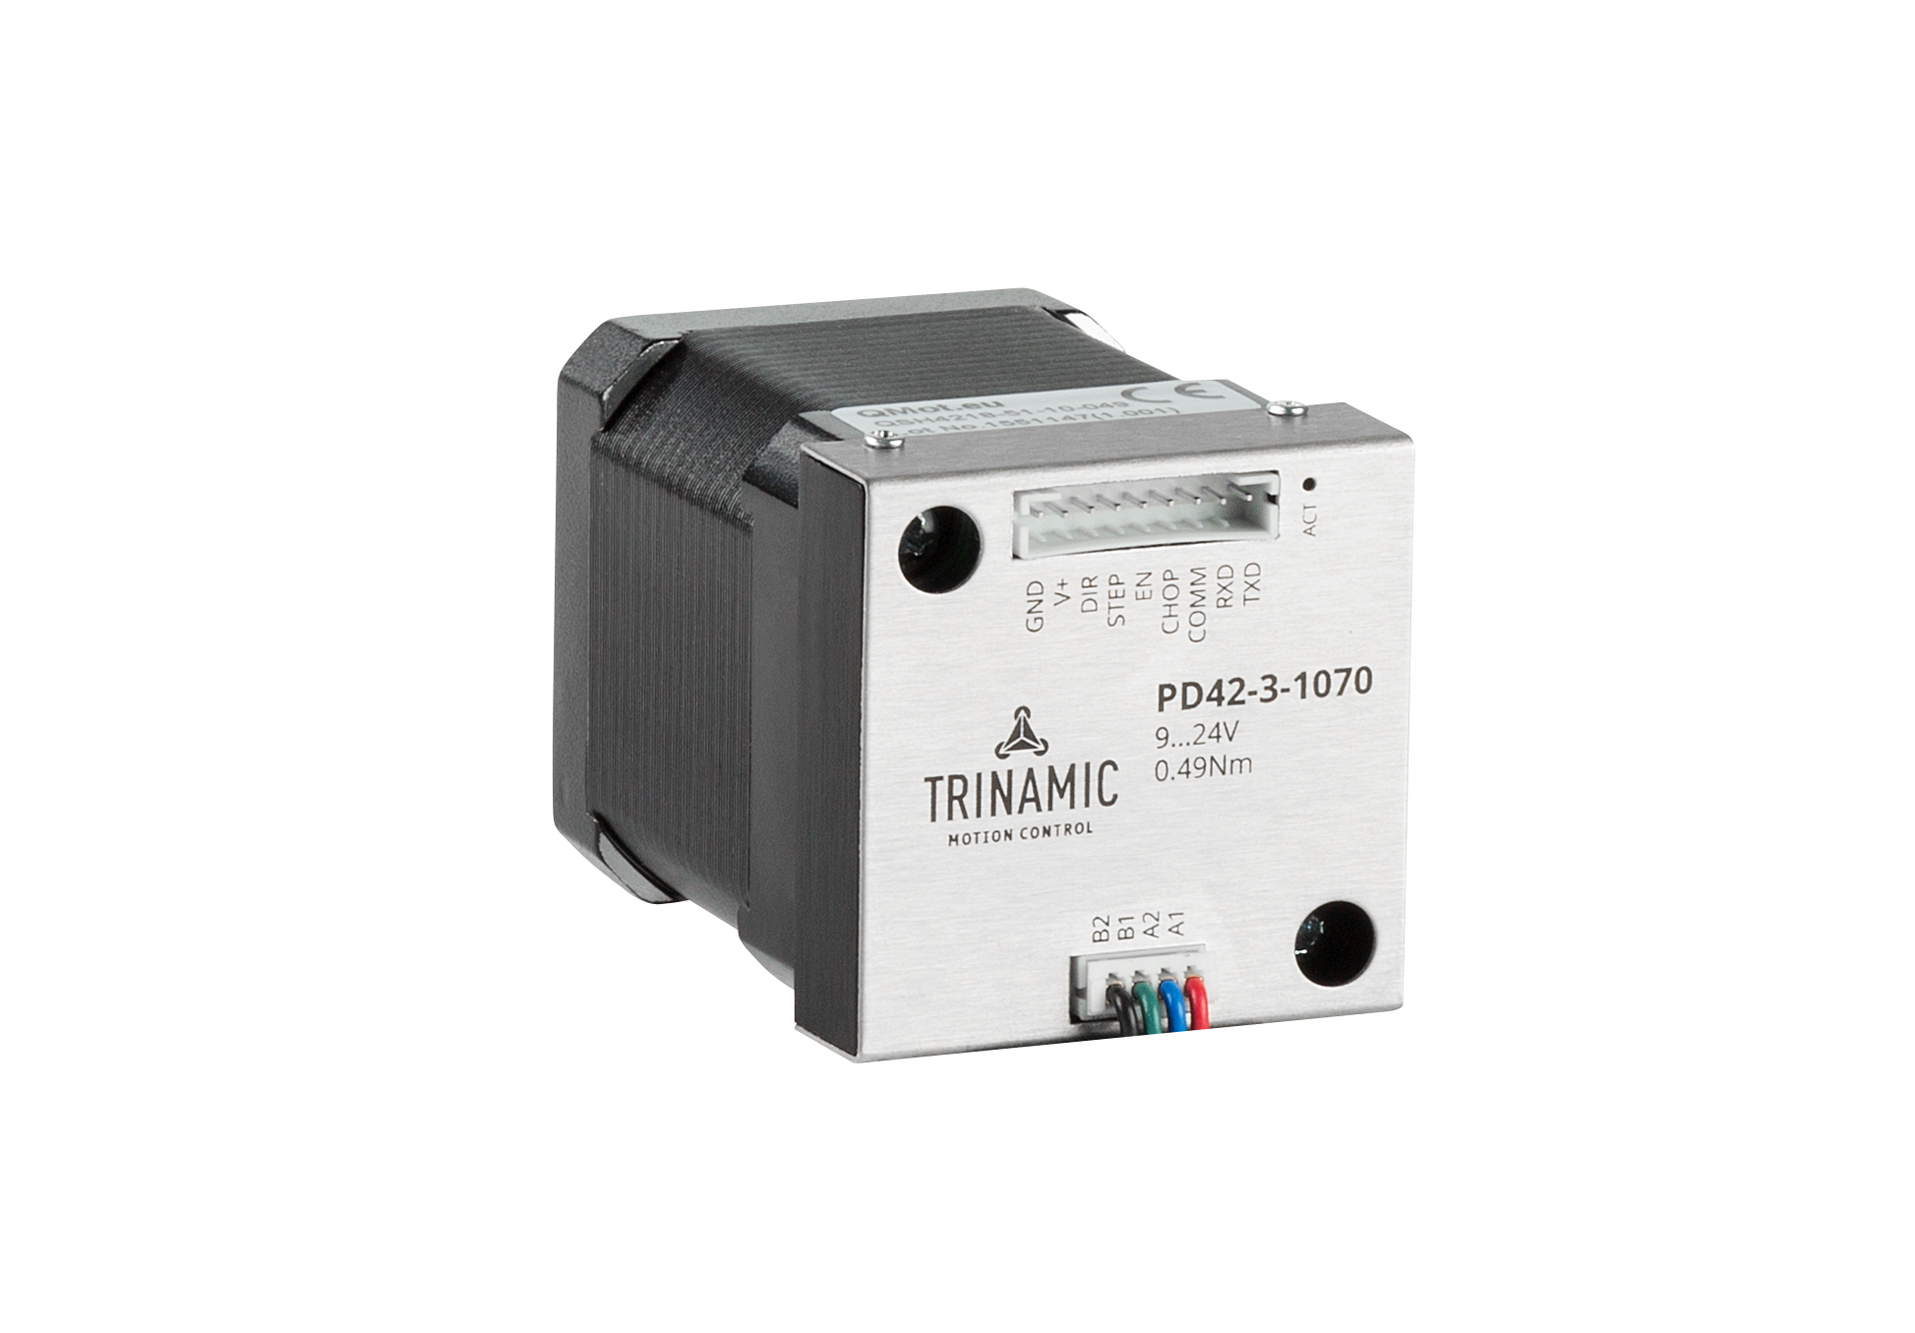 TRINAMIC Motion Control - PANdrive PD42-3-1070